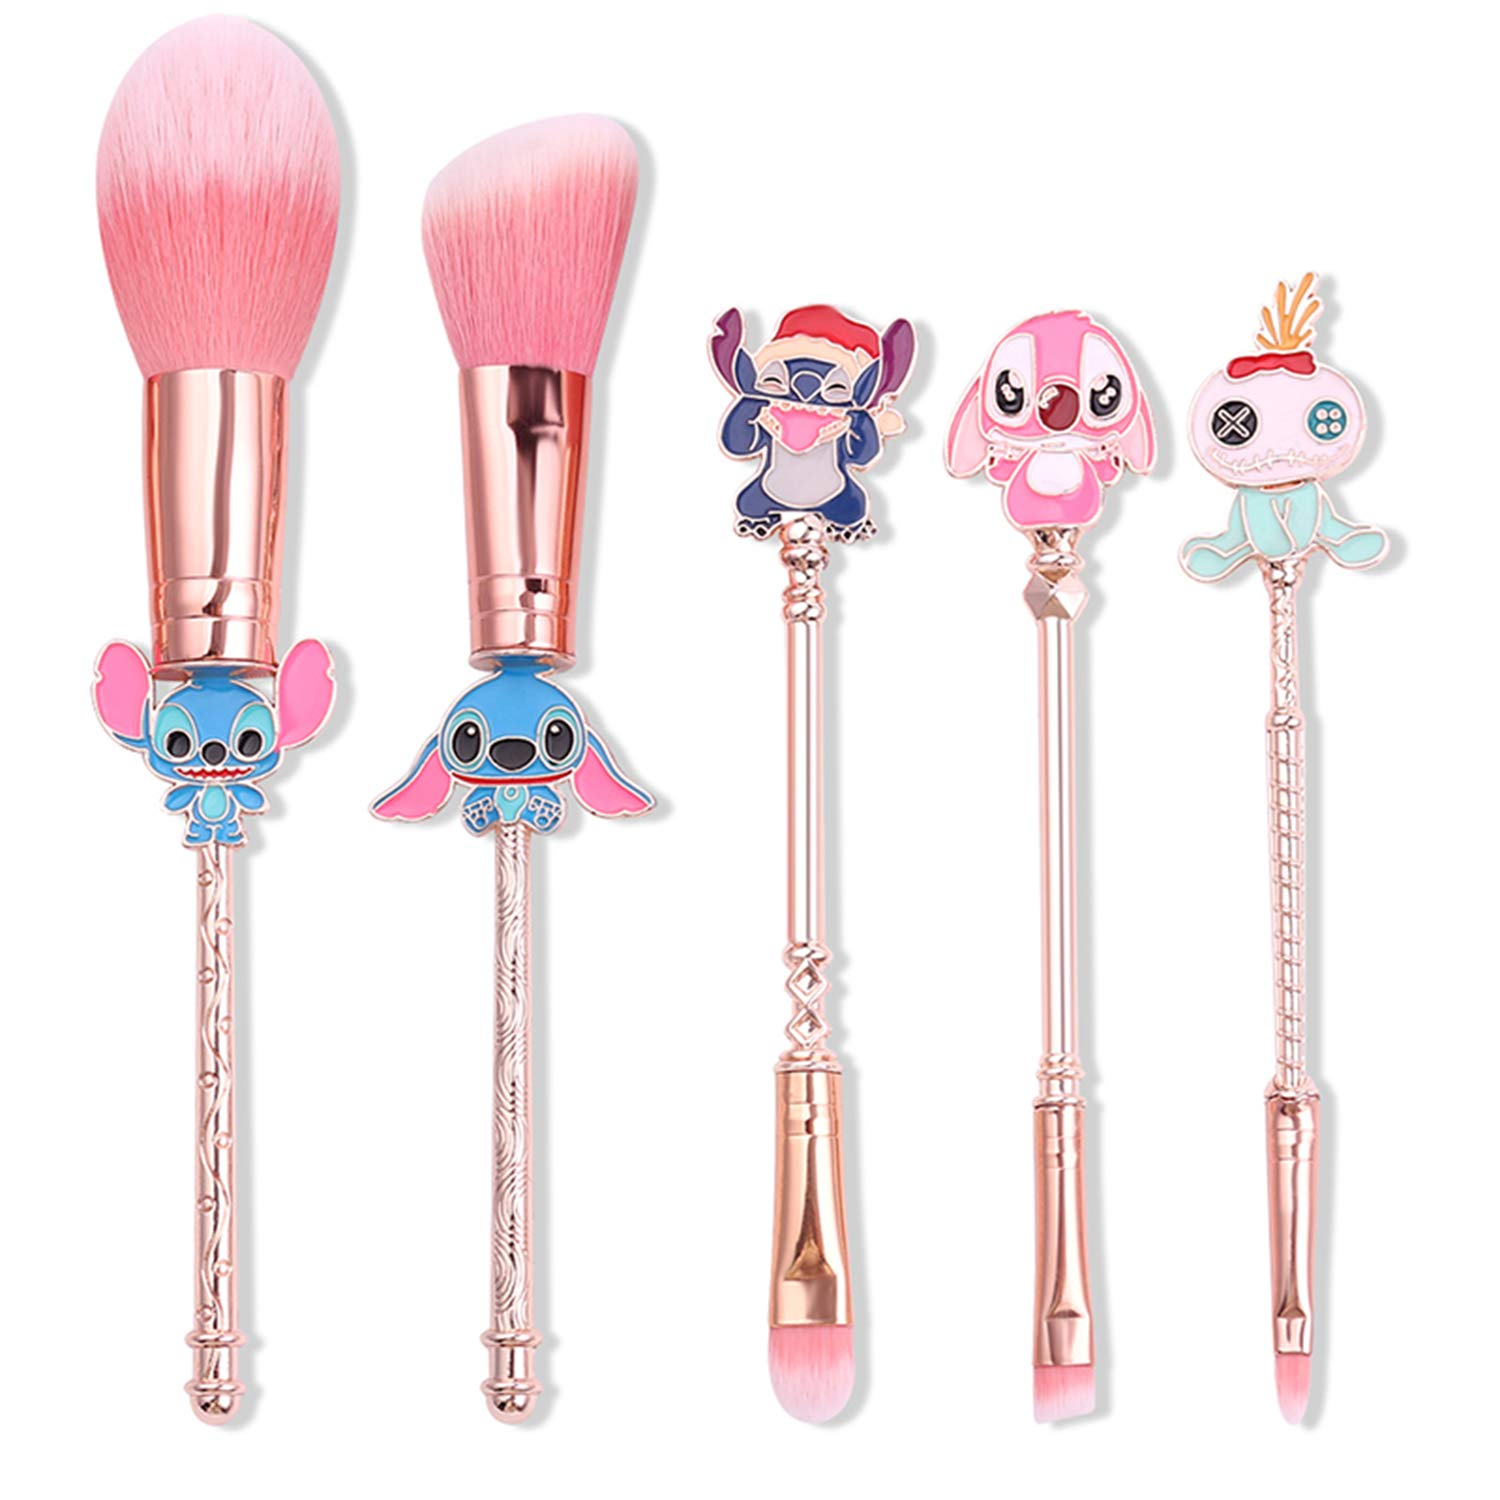 Interstellar Baby Makeup Brushes Set with 5Pcs Creative Stitch Theme Cosmetic Brushes Set, Premium Synthetic Foundation Eyeshades Brush Set Best Gift for Young Girl Women